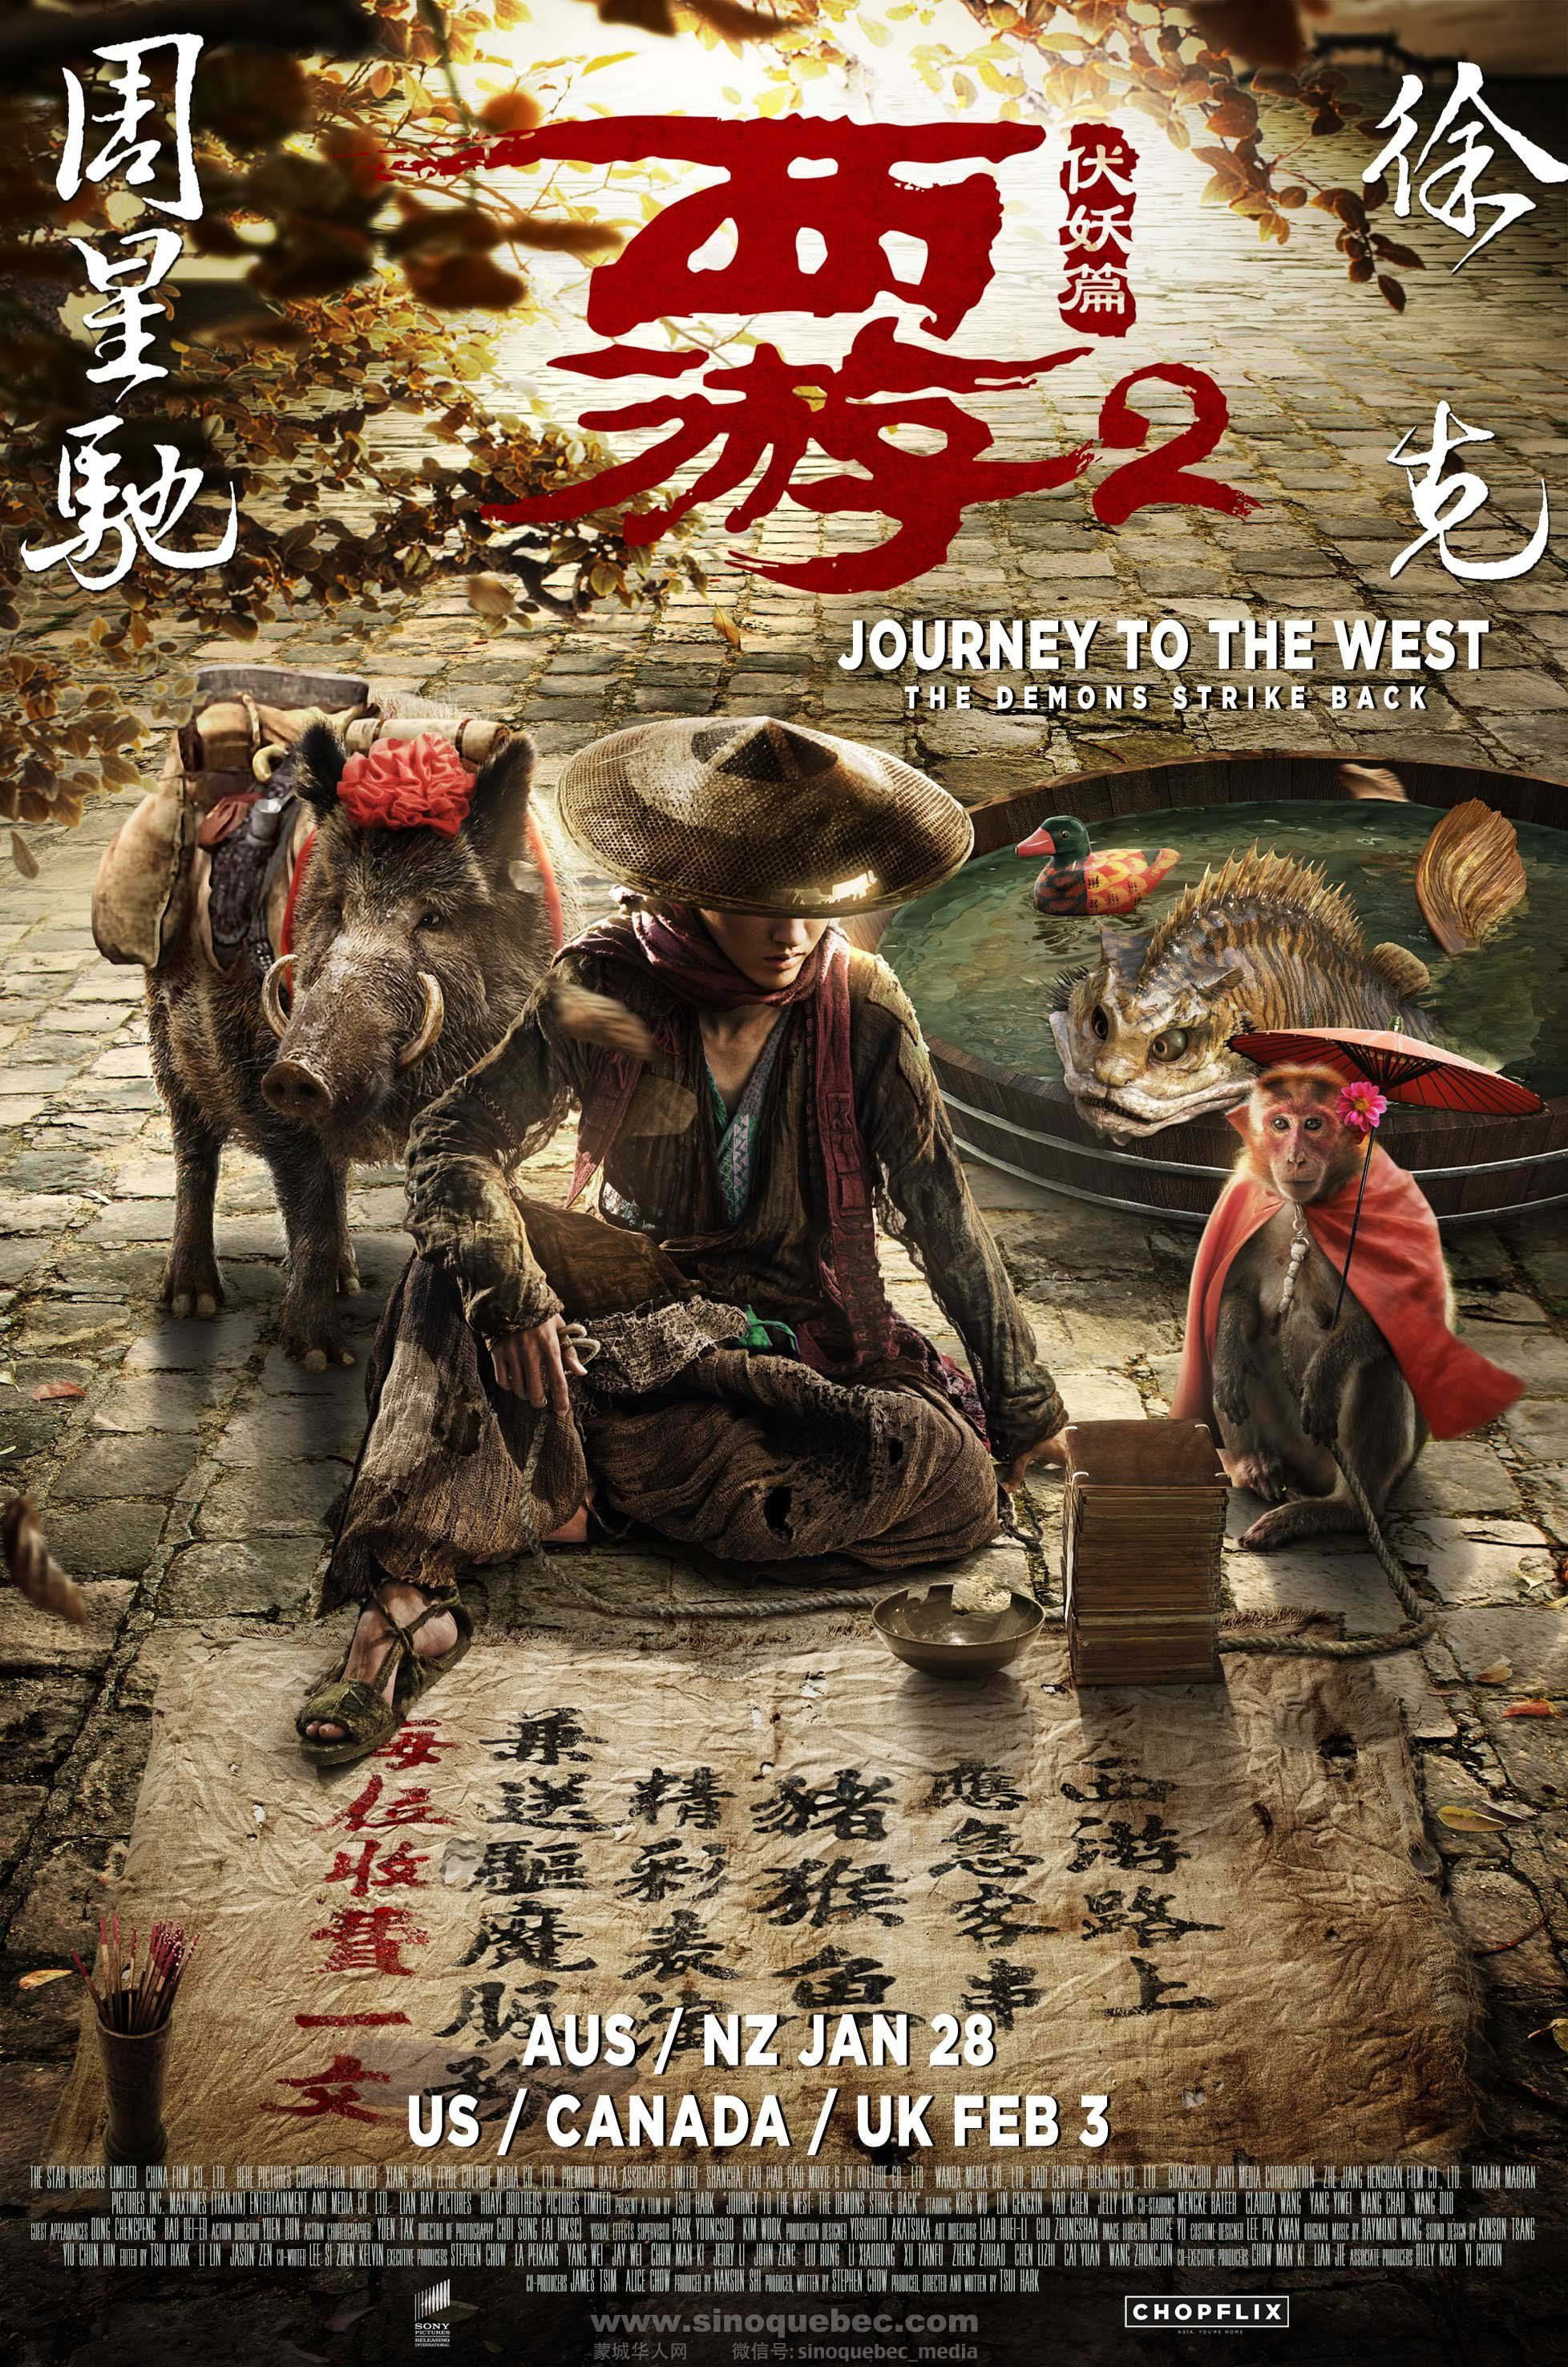 Journey_To_The_West_2_Poster_WEB_27X41_72dpi.jpg